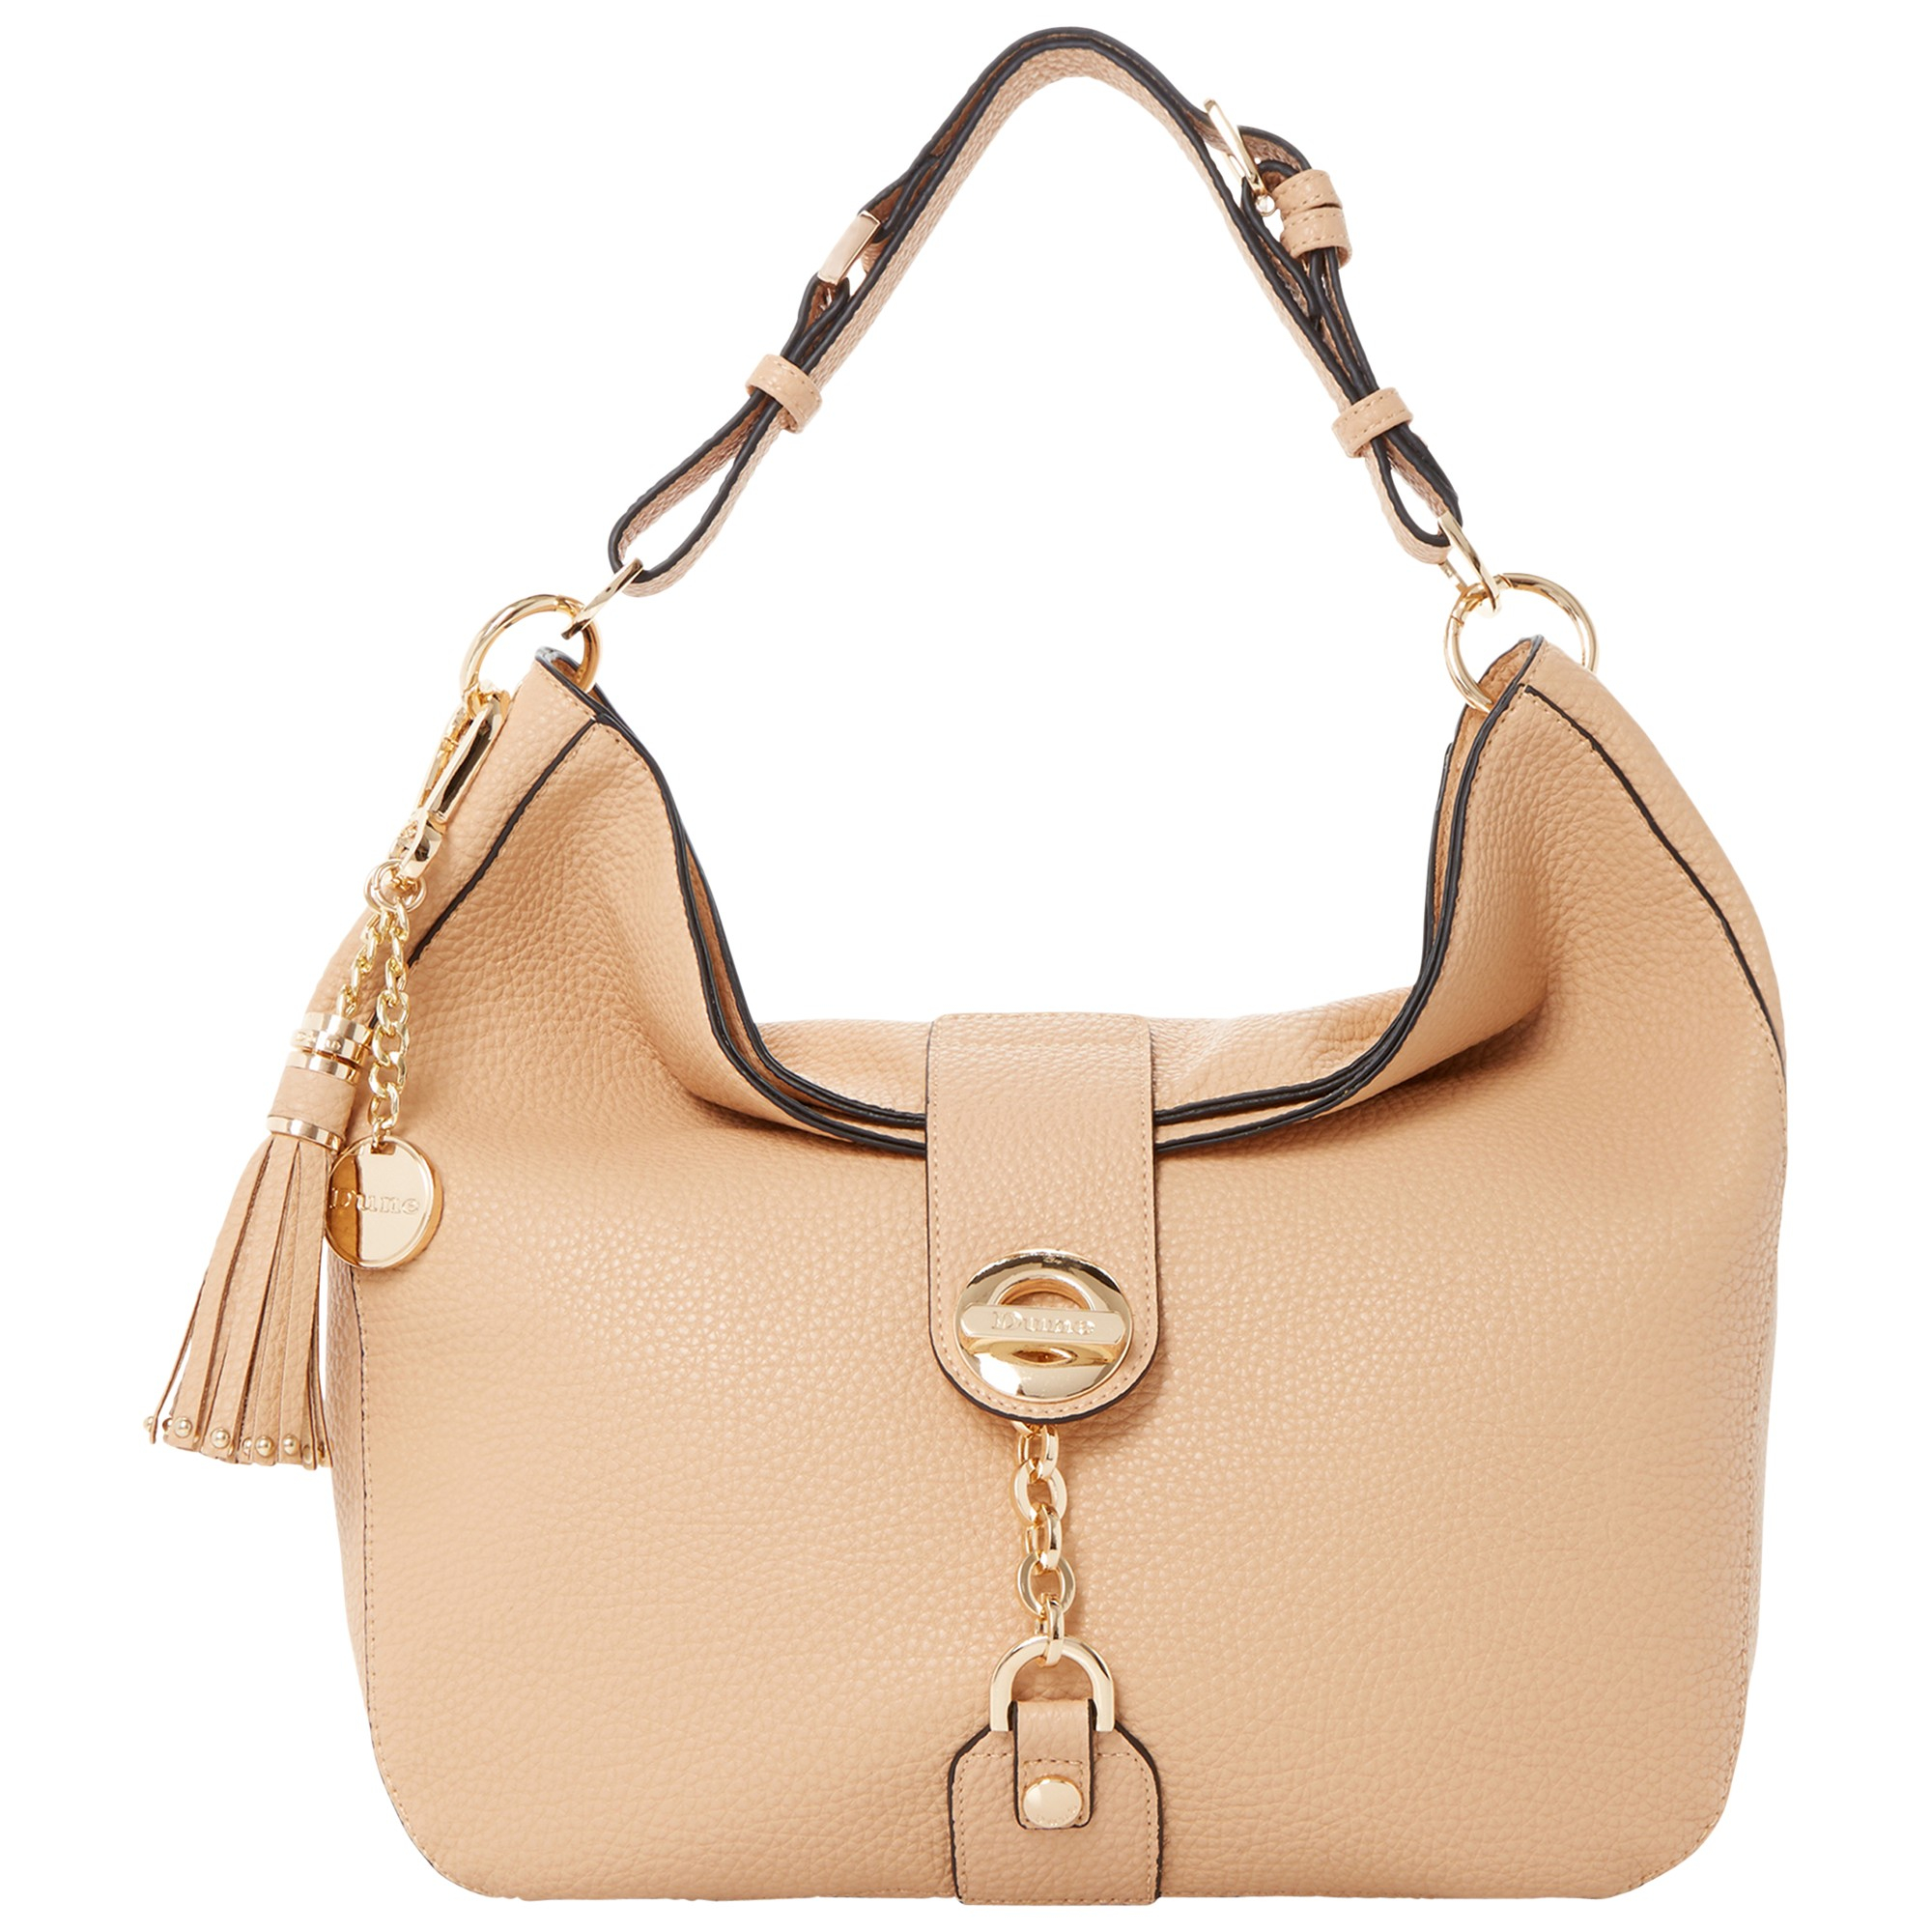 a915a7e721 Dune Dobbly Branded Metal Toggle Slouchy Shoulder Bag in Natural - Lyst